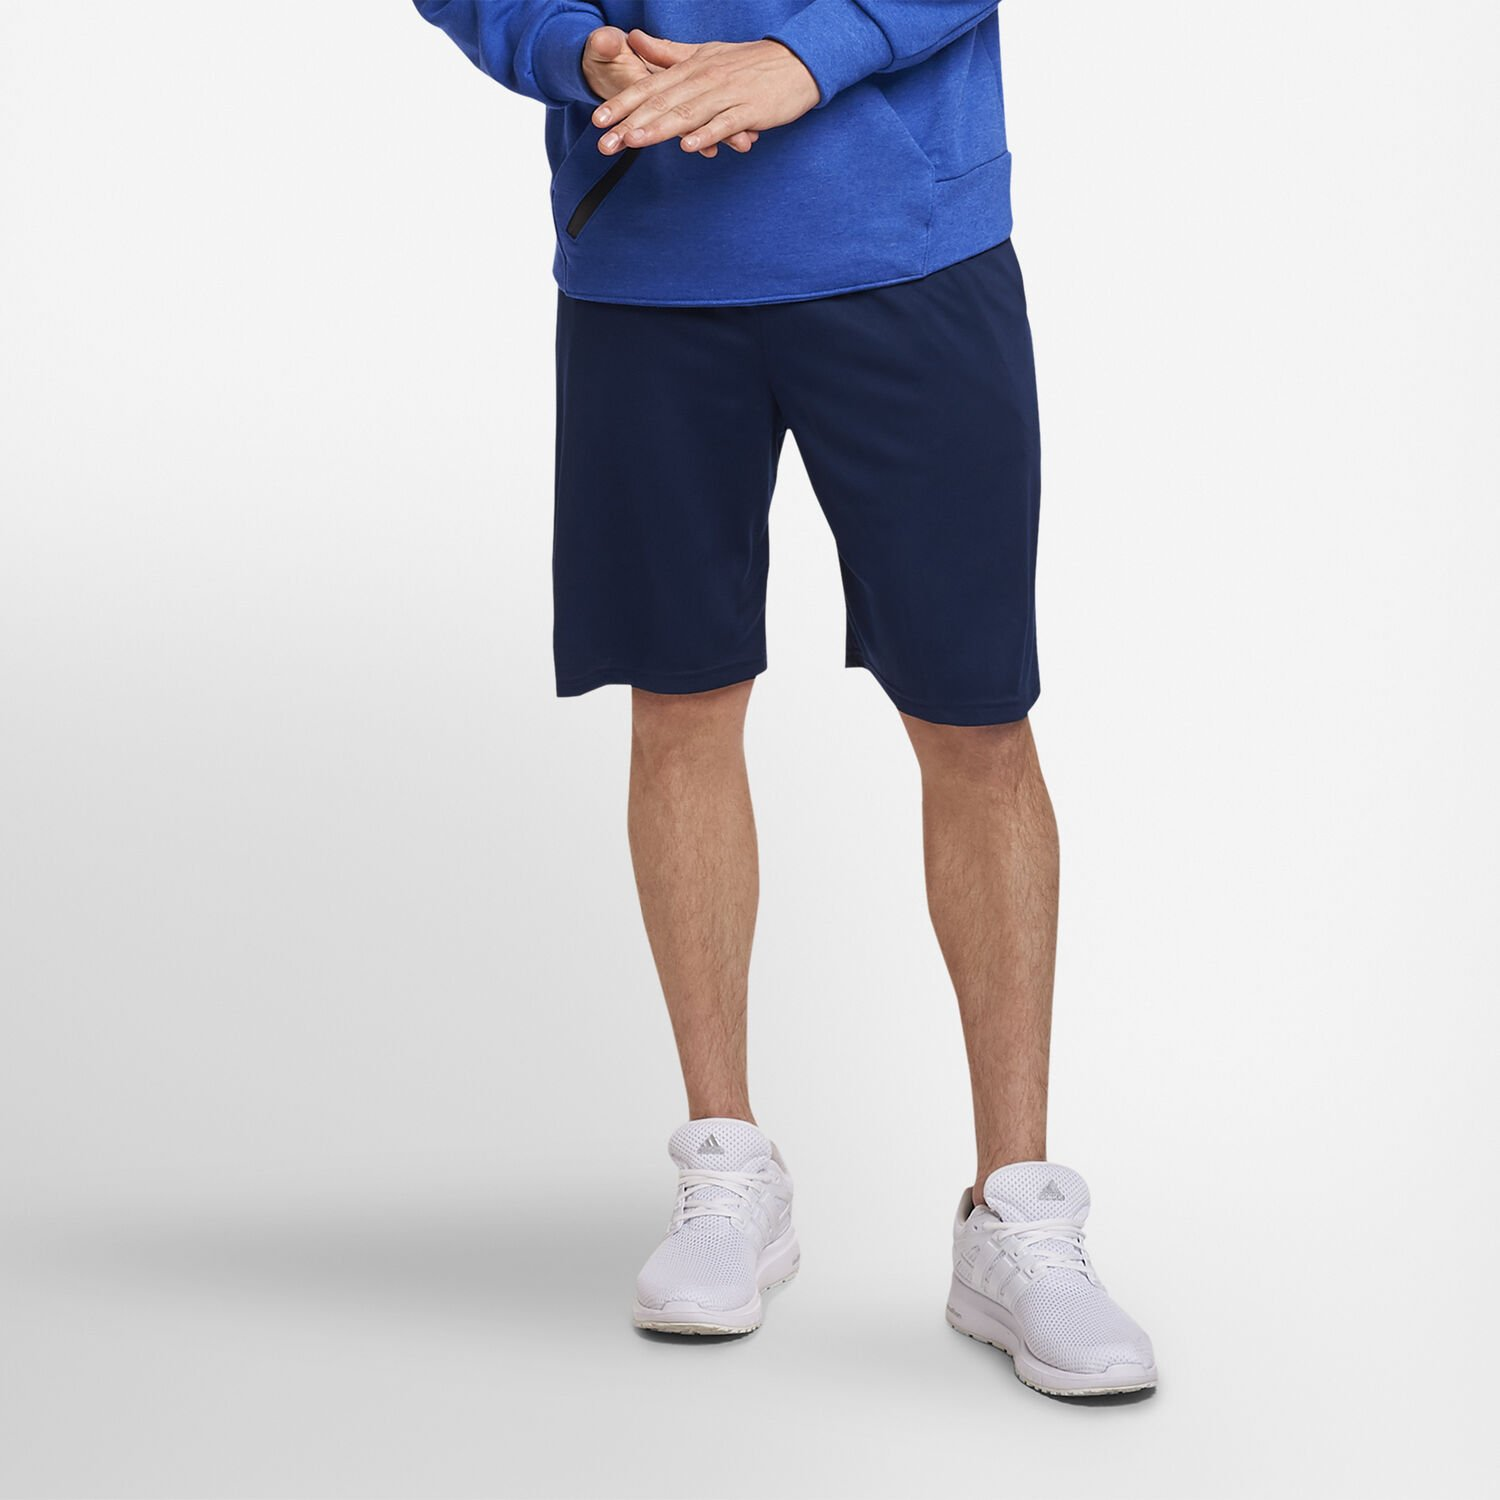 Men s Dri-Power® Performance Shorts with Pockets - Russell US ... 9dfc8544a